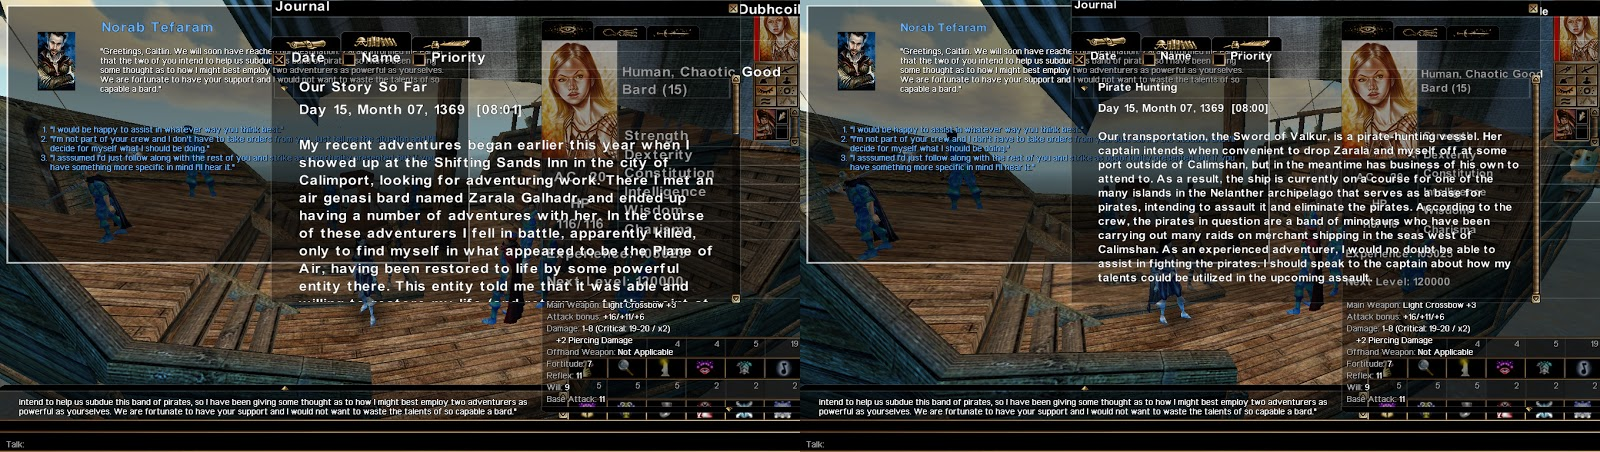 NWN - Neverwinter Nights (NWN & NWN2) Modules Thread | Page